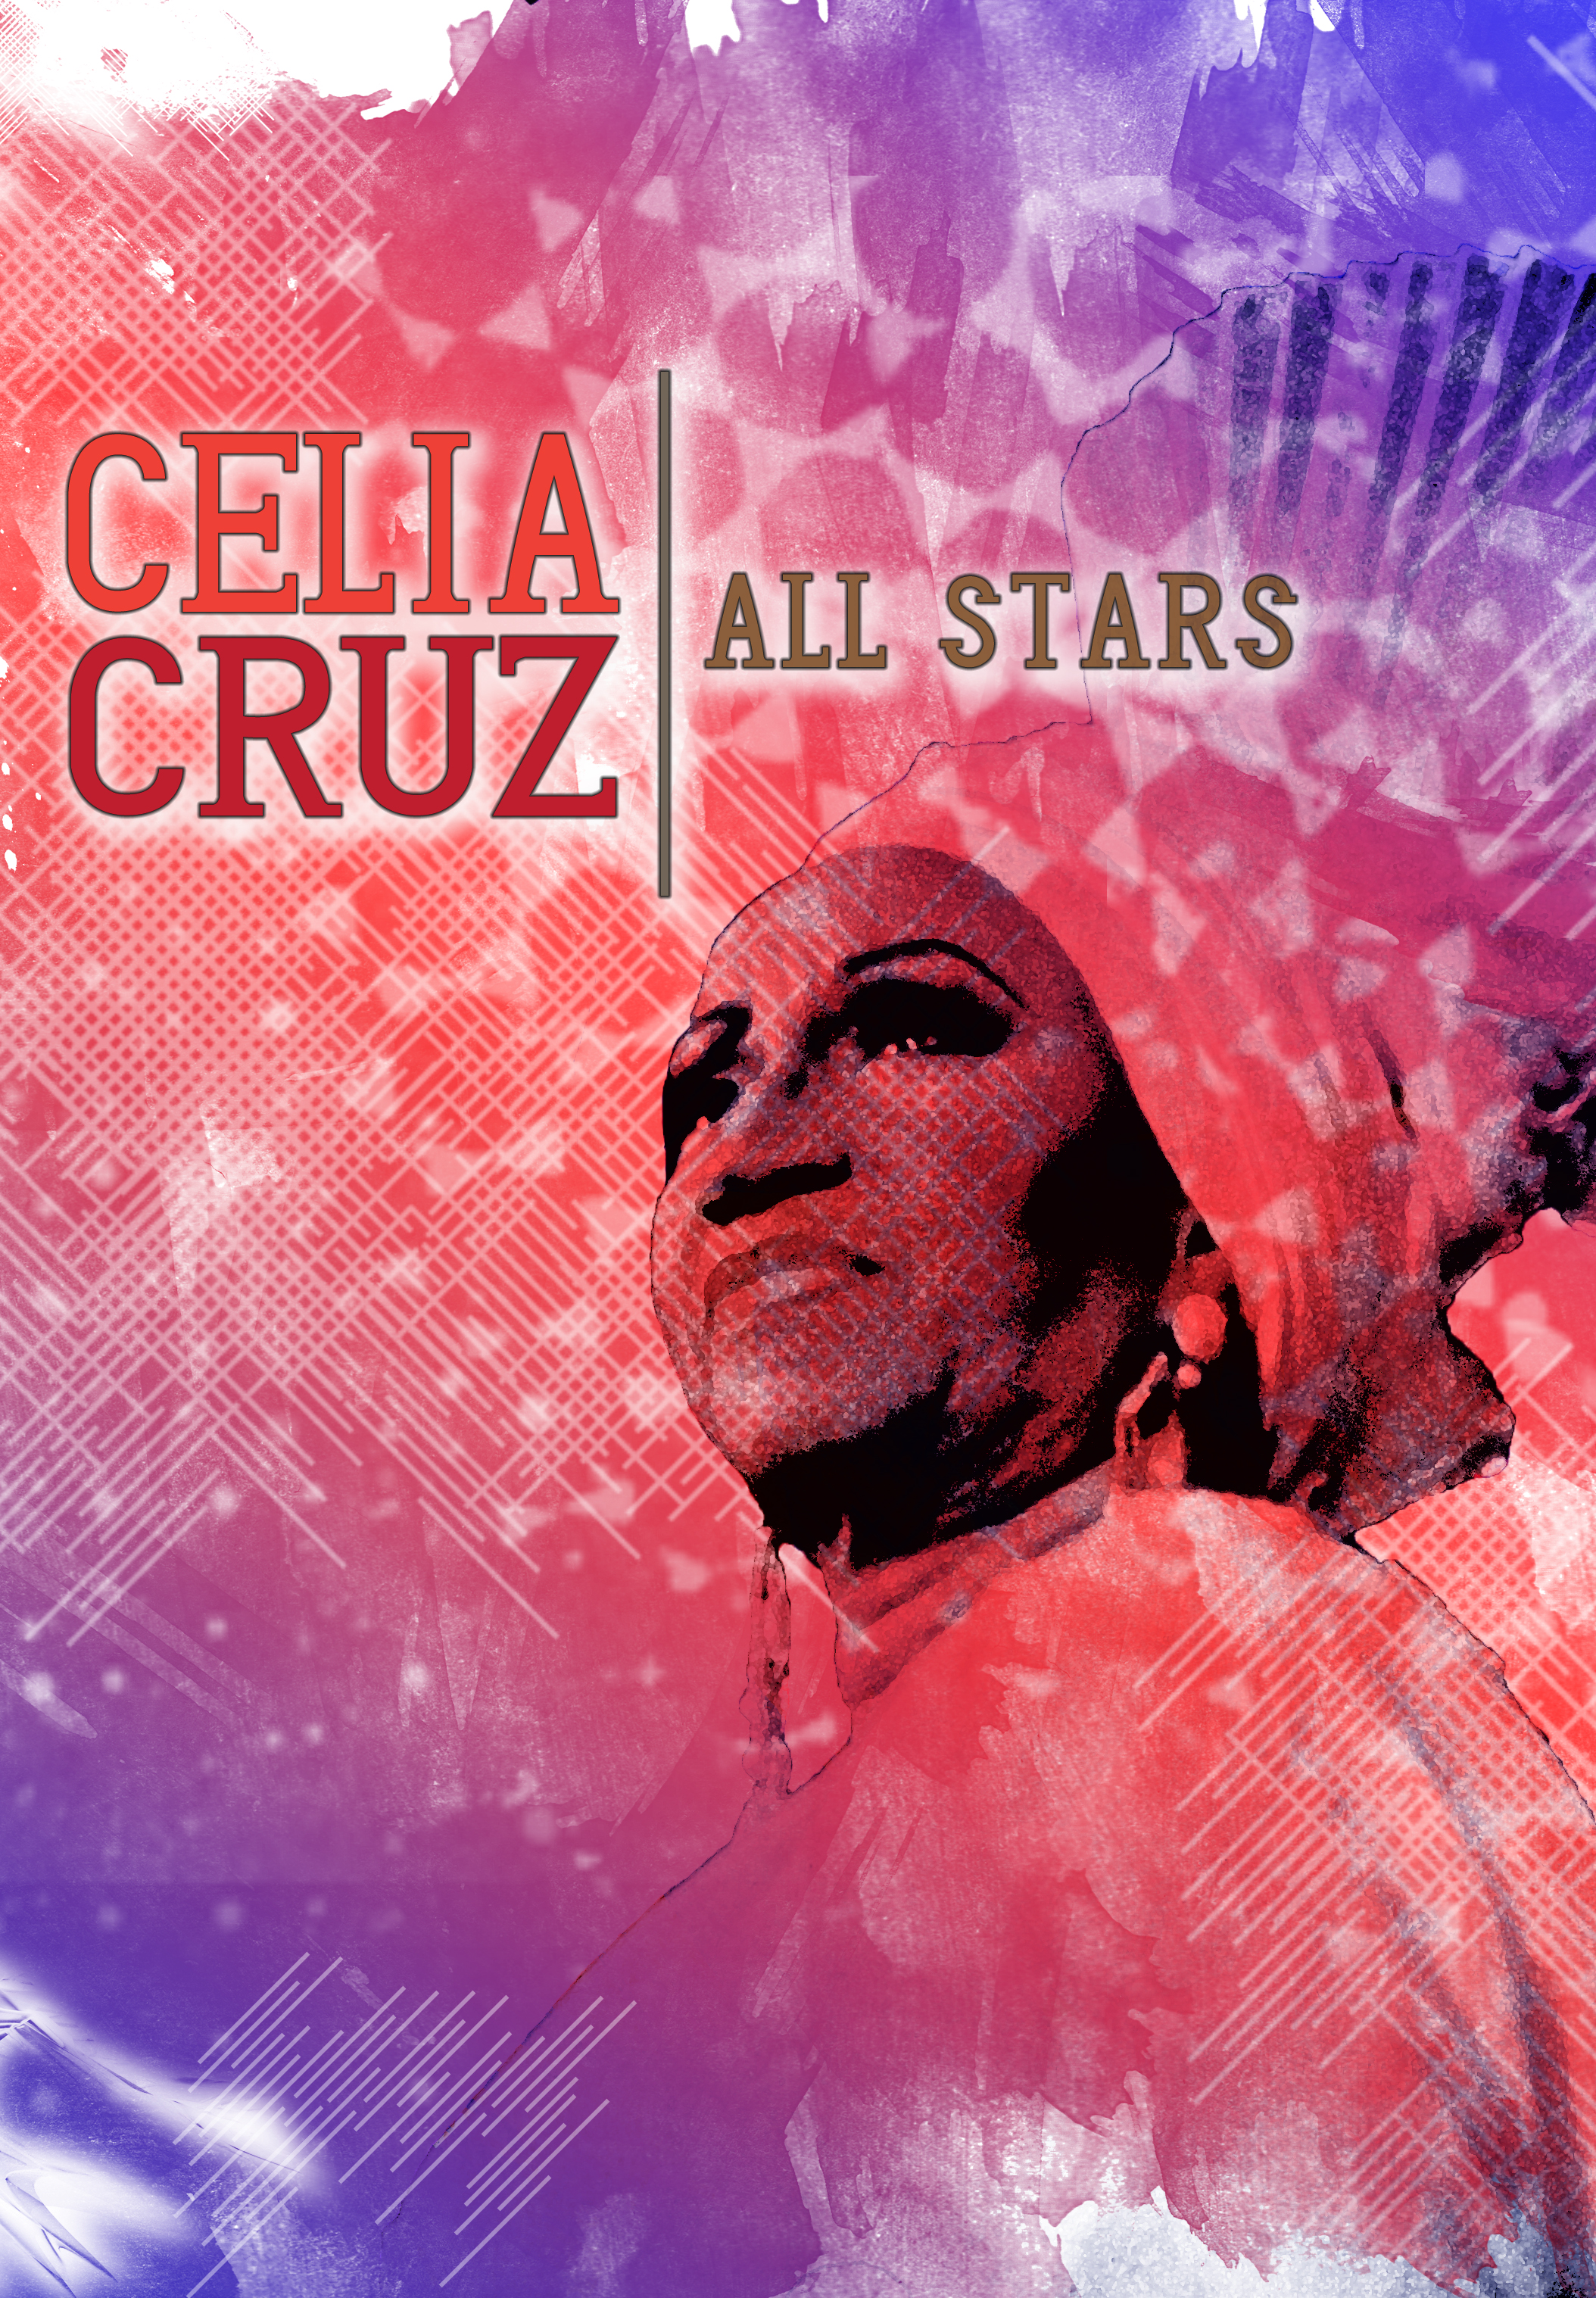 Celia Cruz Foundation The Celia Cruz All Stars a